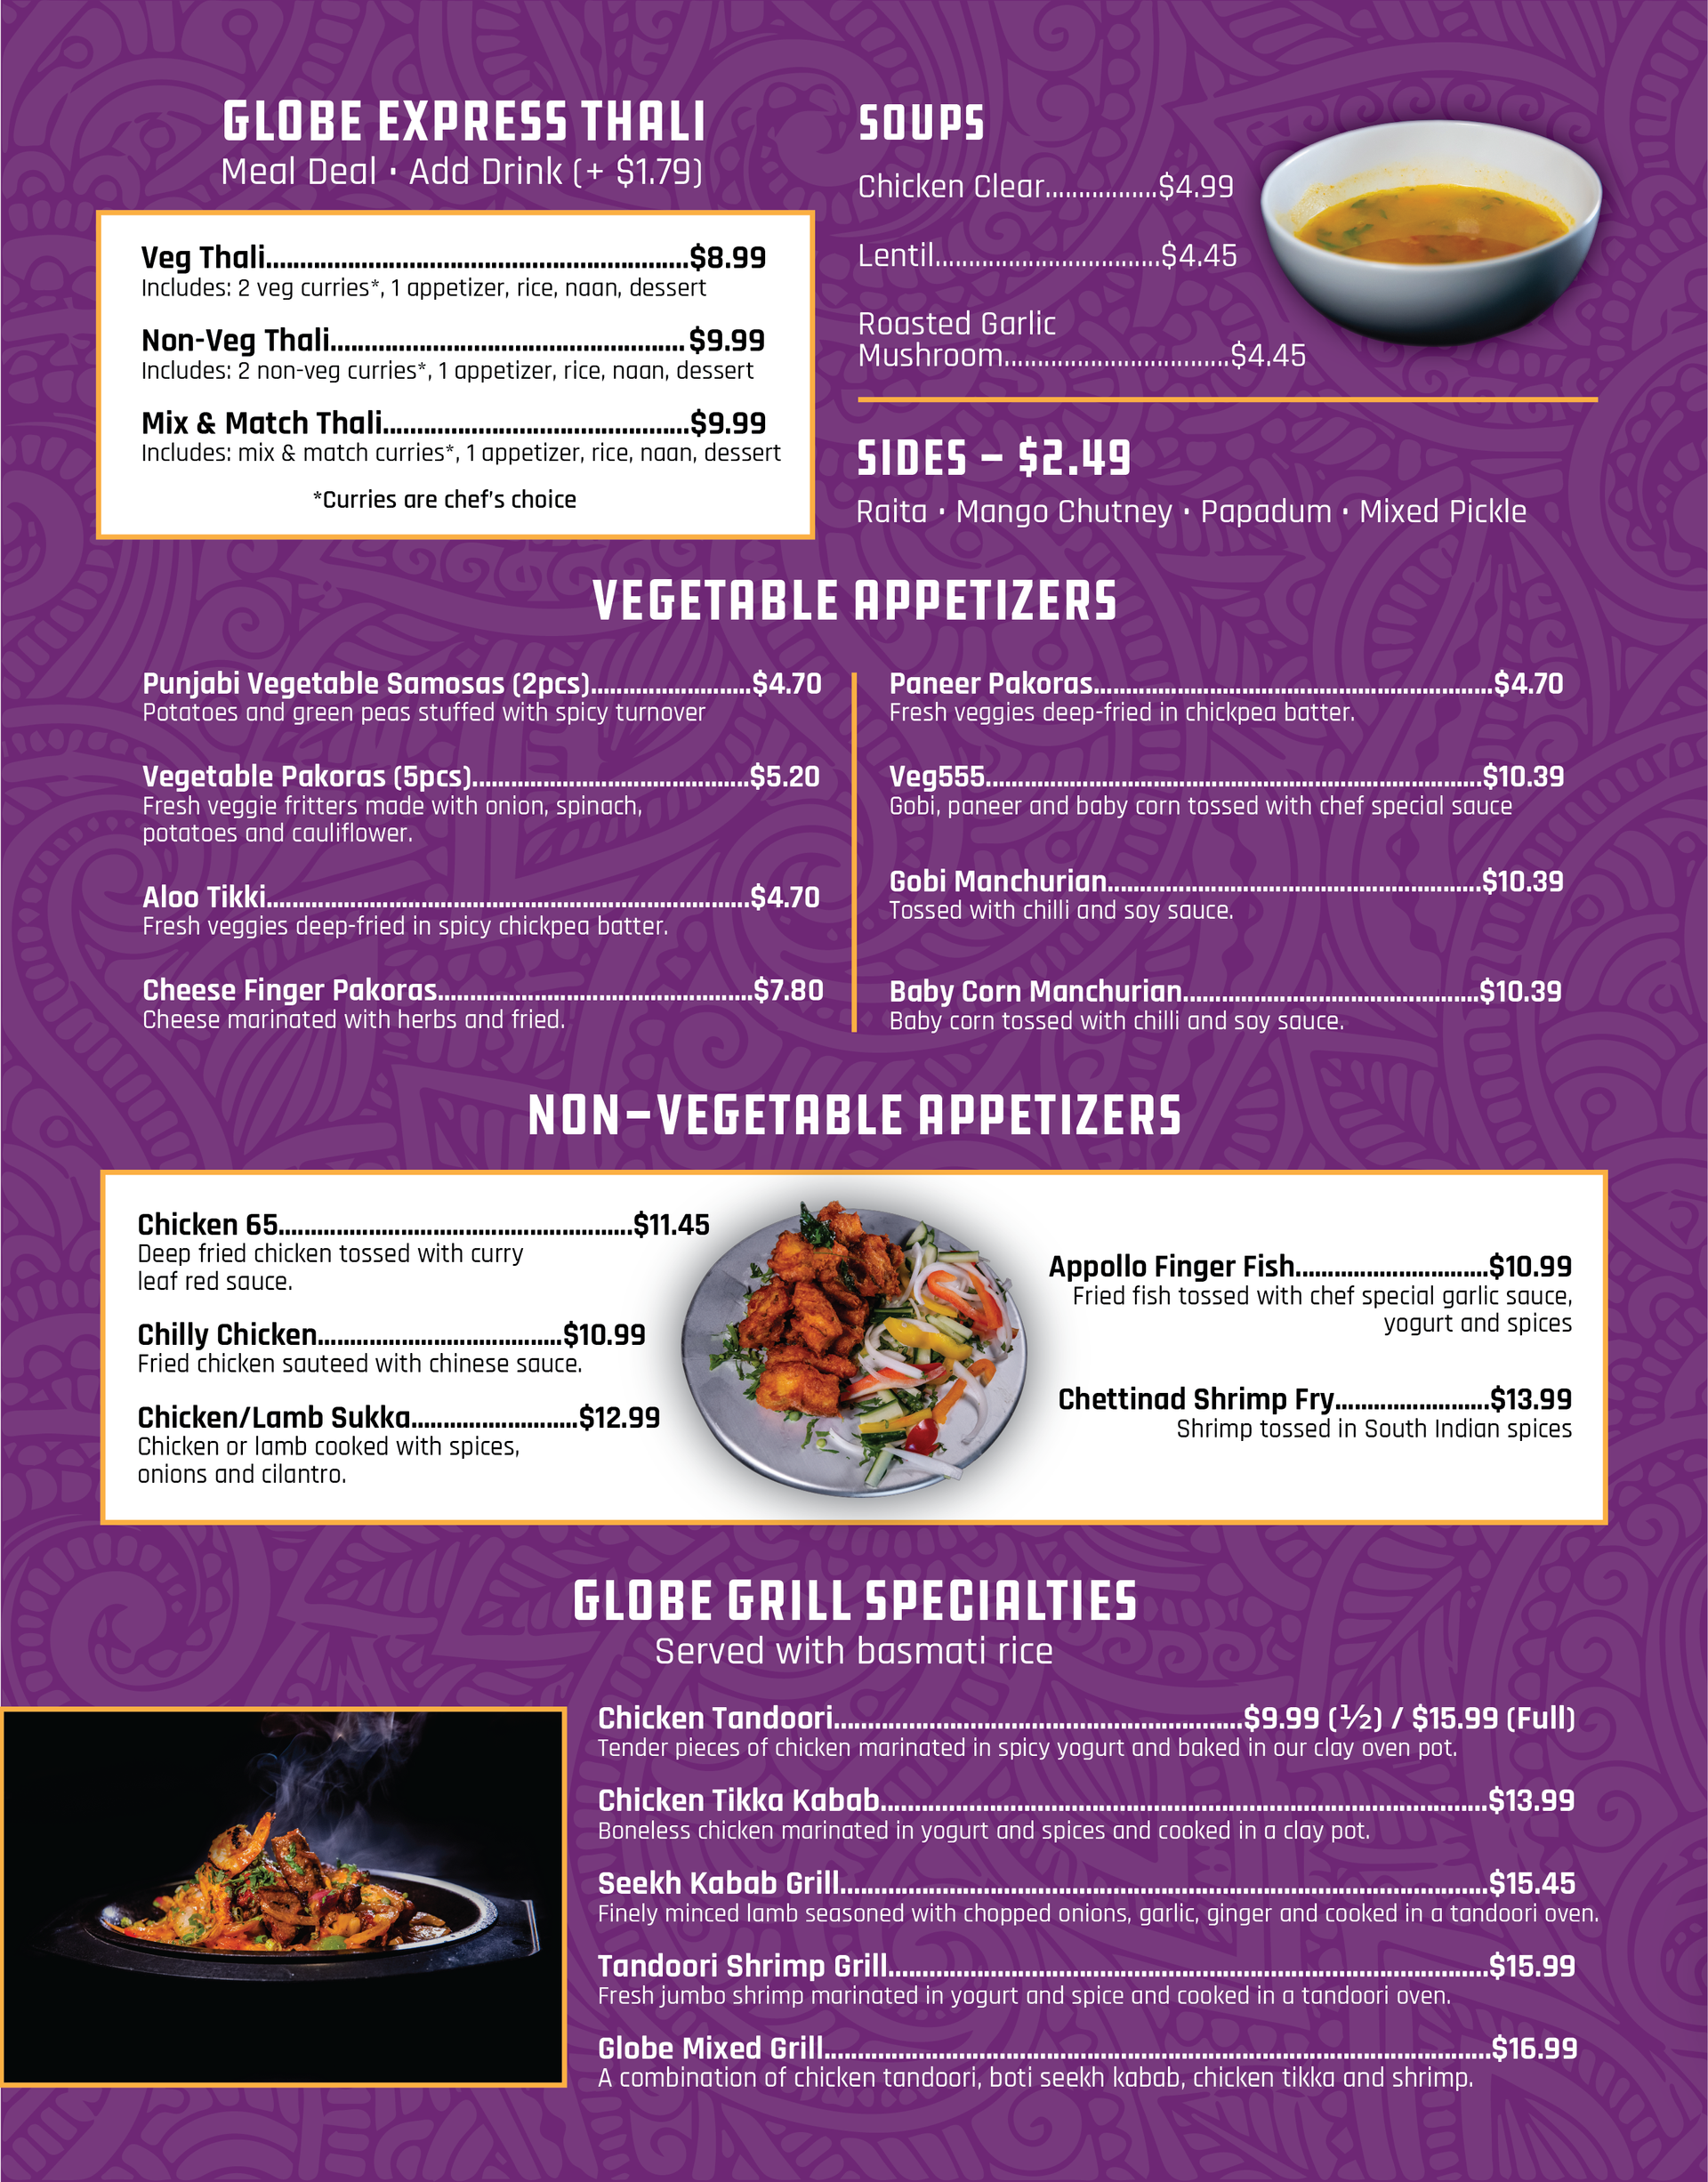 GlobeMHK_Menu_3_bv_FINAL-02.png